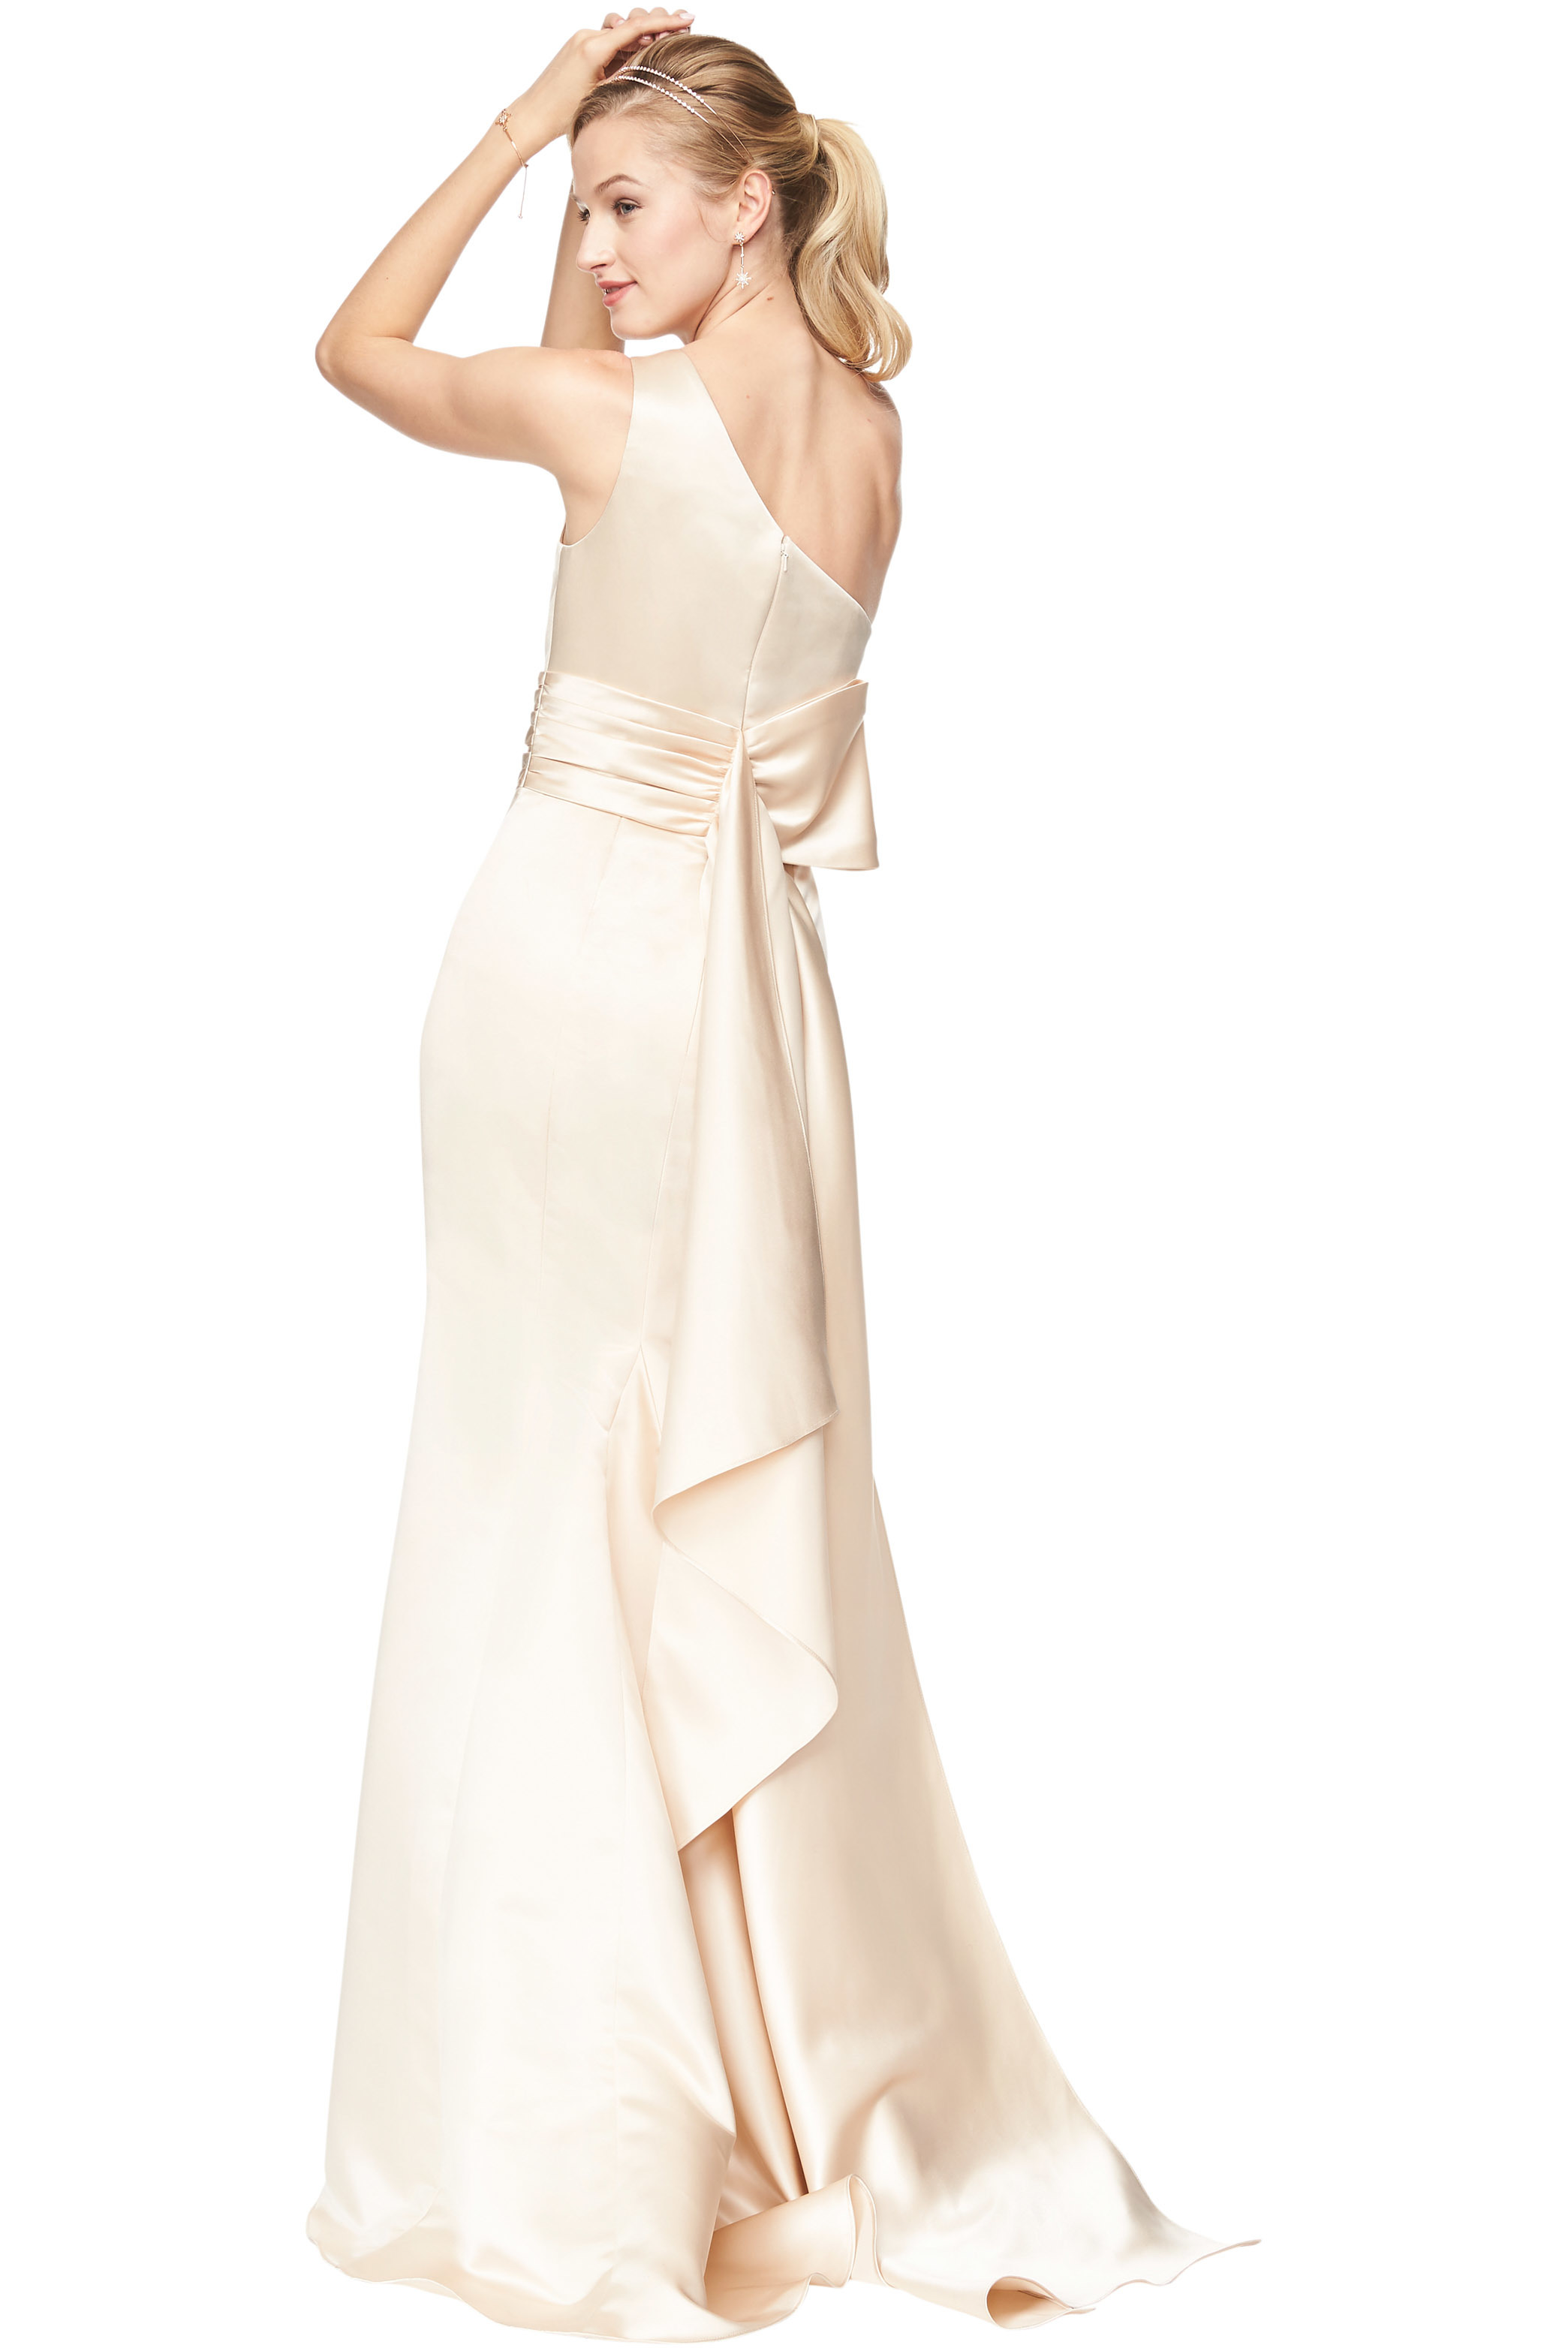 Bill Levkoff EURO CHAMPAGNE Euro Satin One Shoulder A-Line gown, $210.00 Back